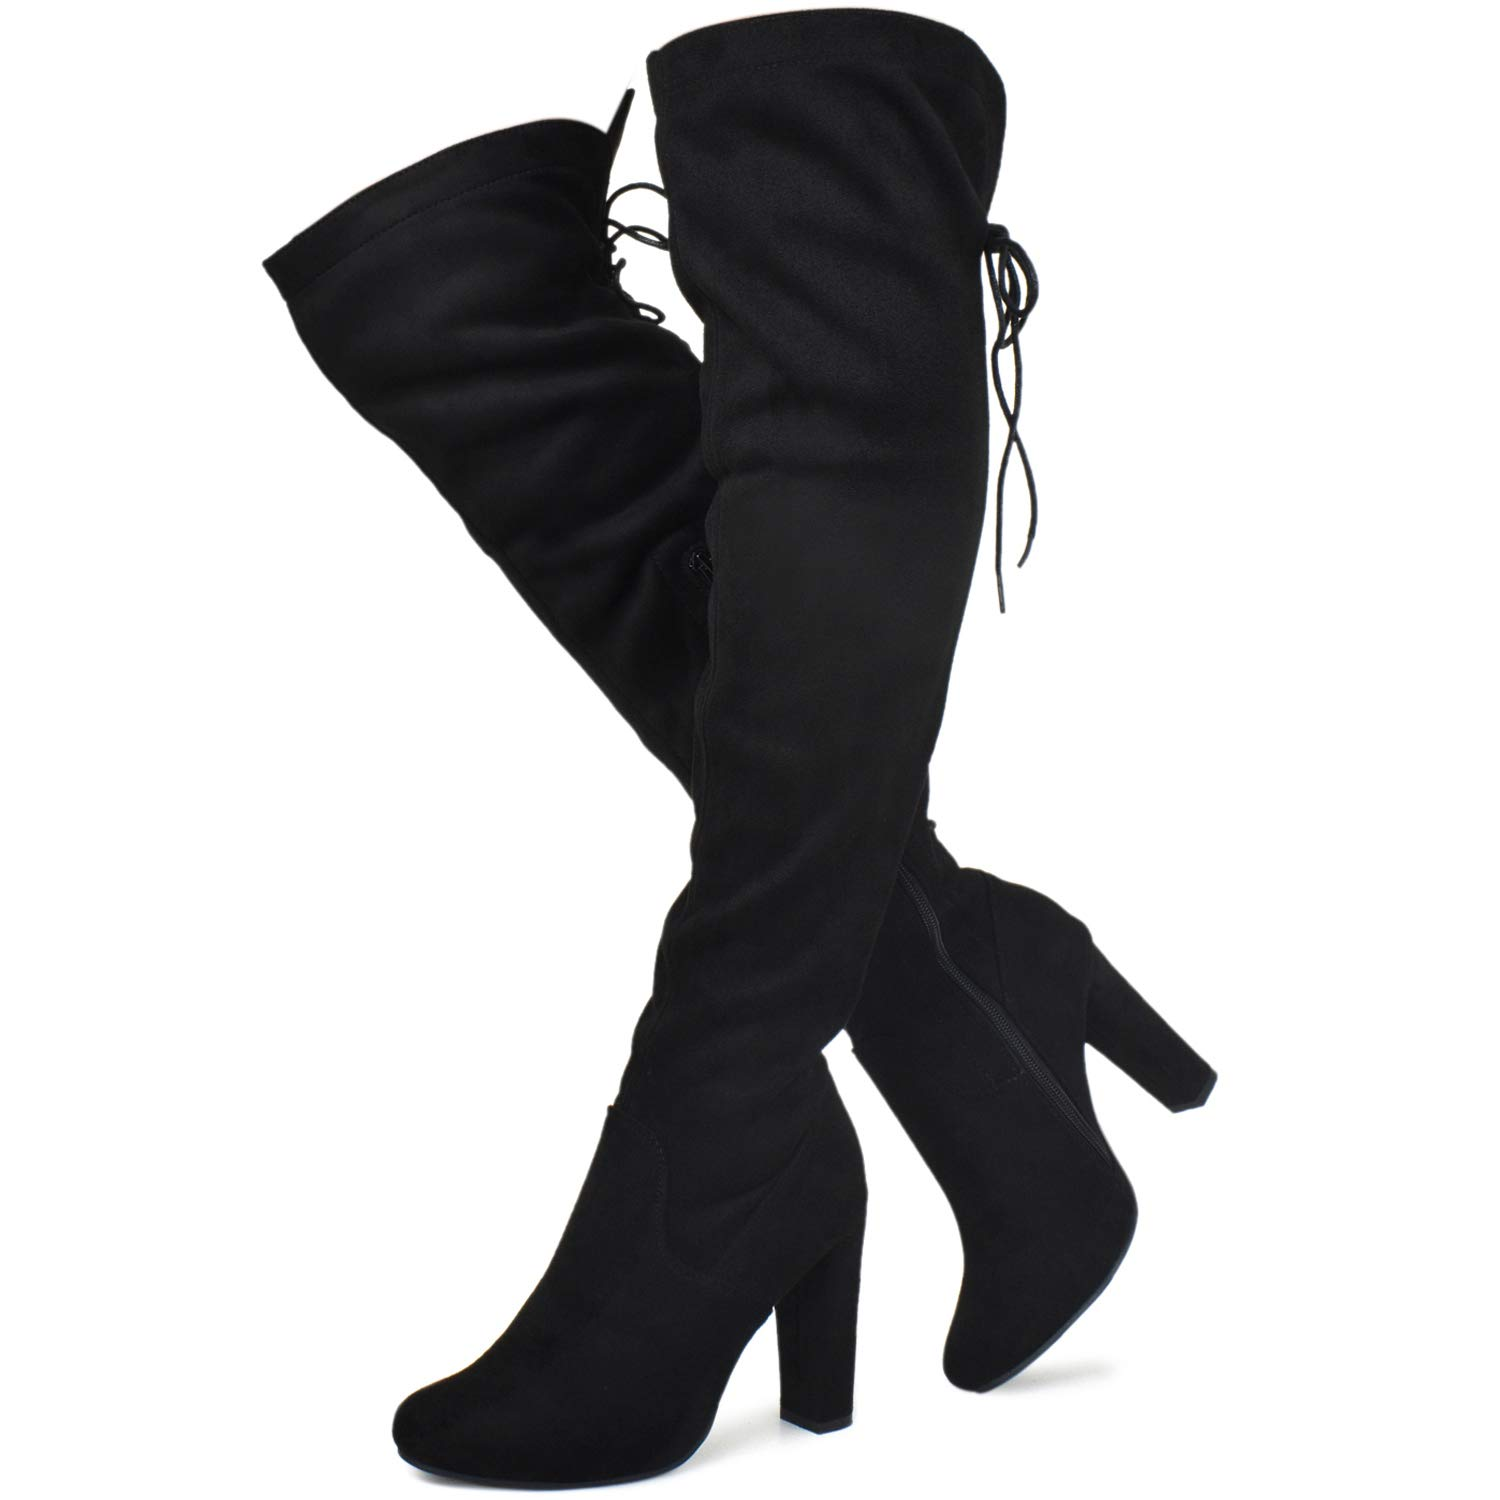 Prime Shoes - Women's Thigh High Stretch Boot - Trendy High Heel Shoe - Sexy Over The Knee Pullon Boot - Comfortable Easy Heel, 000000001 Black Size 8 by Prime Shoes